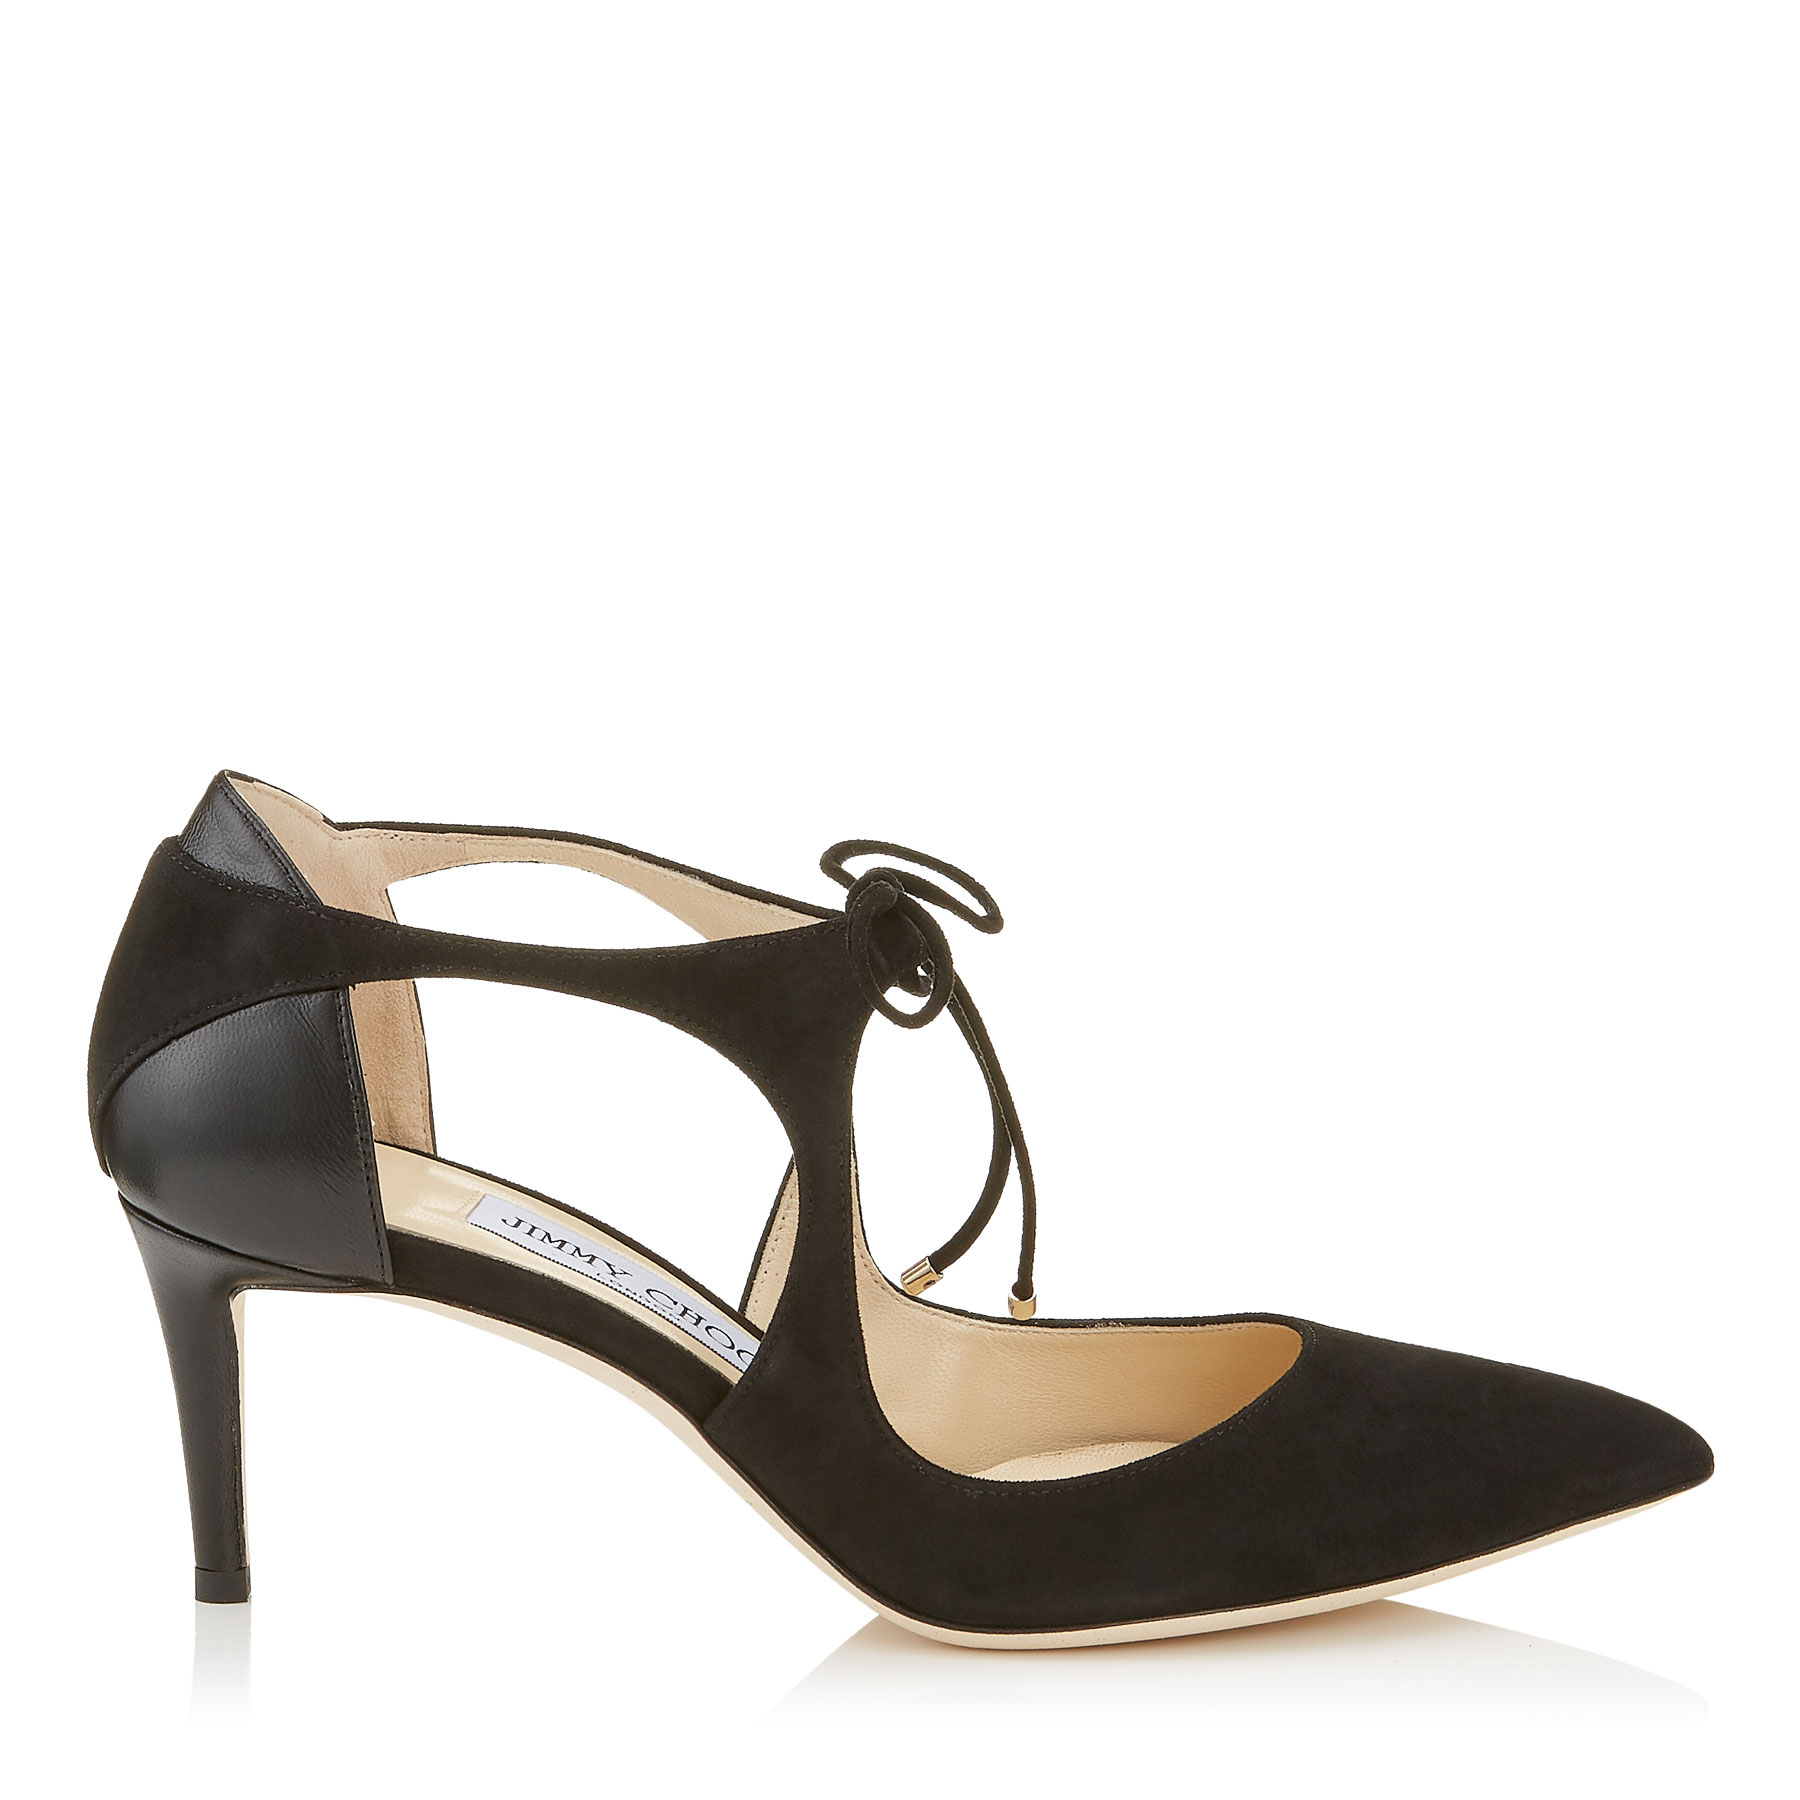 VANESSA 65 Black Suede and Nappa Leather Pointy Toe Pumps by Jimmy Choo